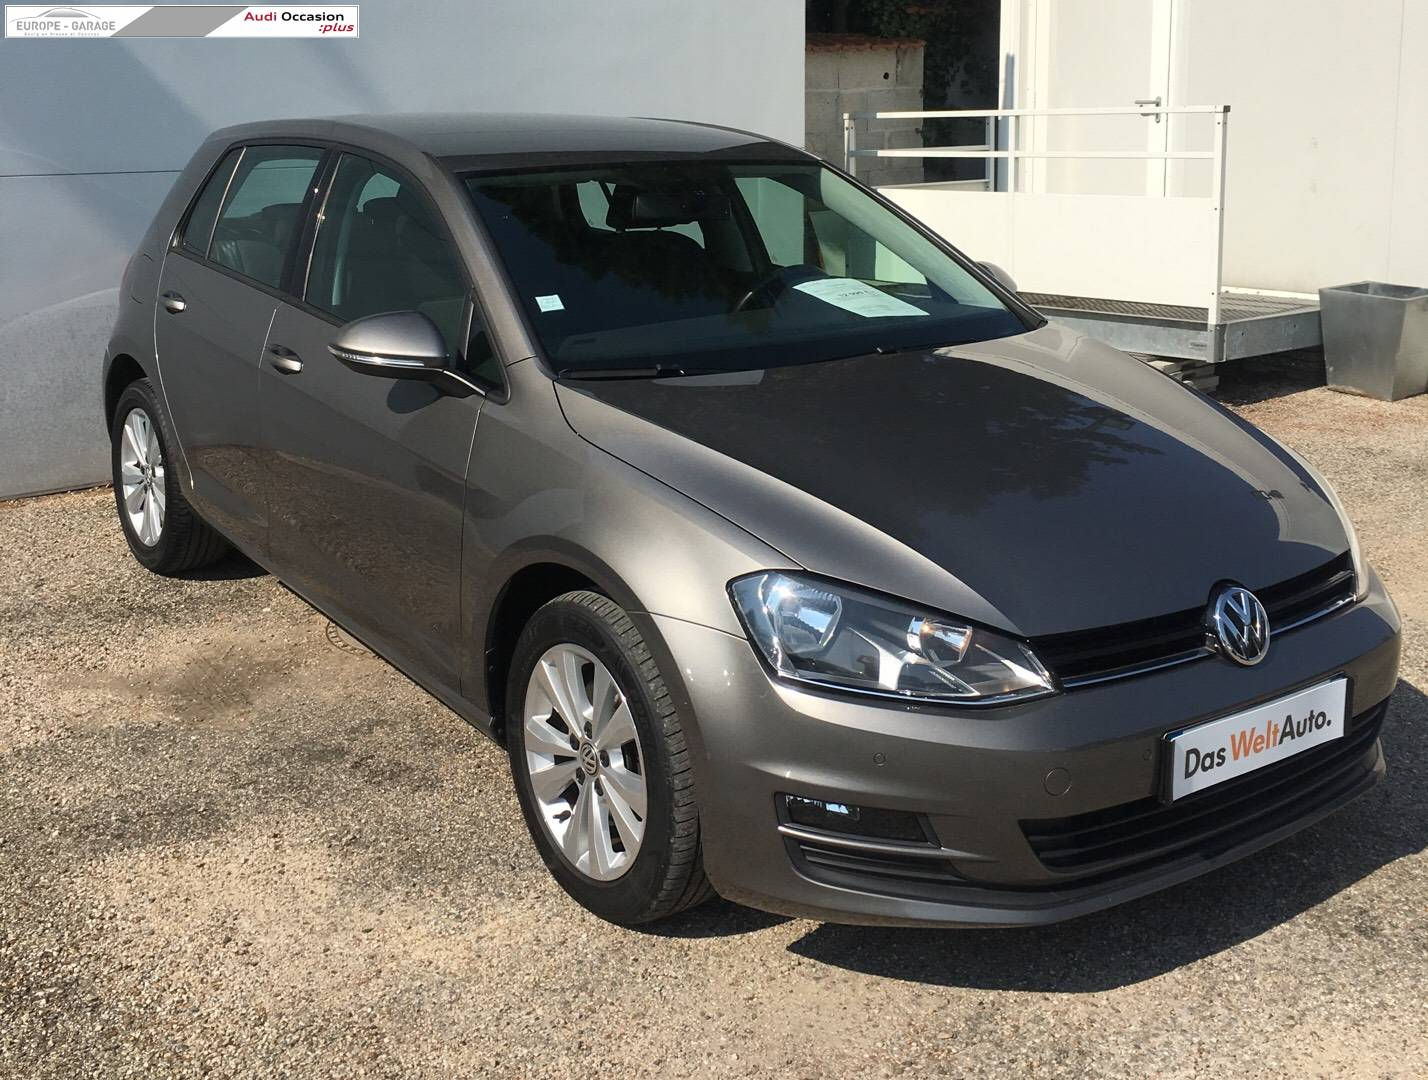 1 - Golf 1.6 TDI 105 BlueMotion Technology FAP